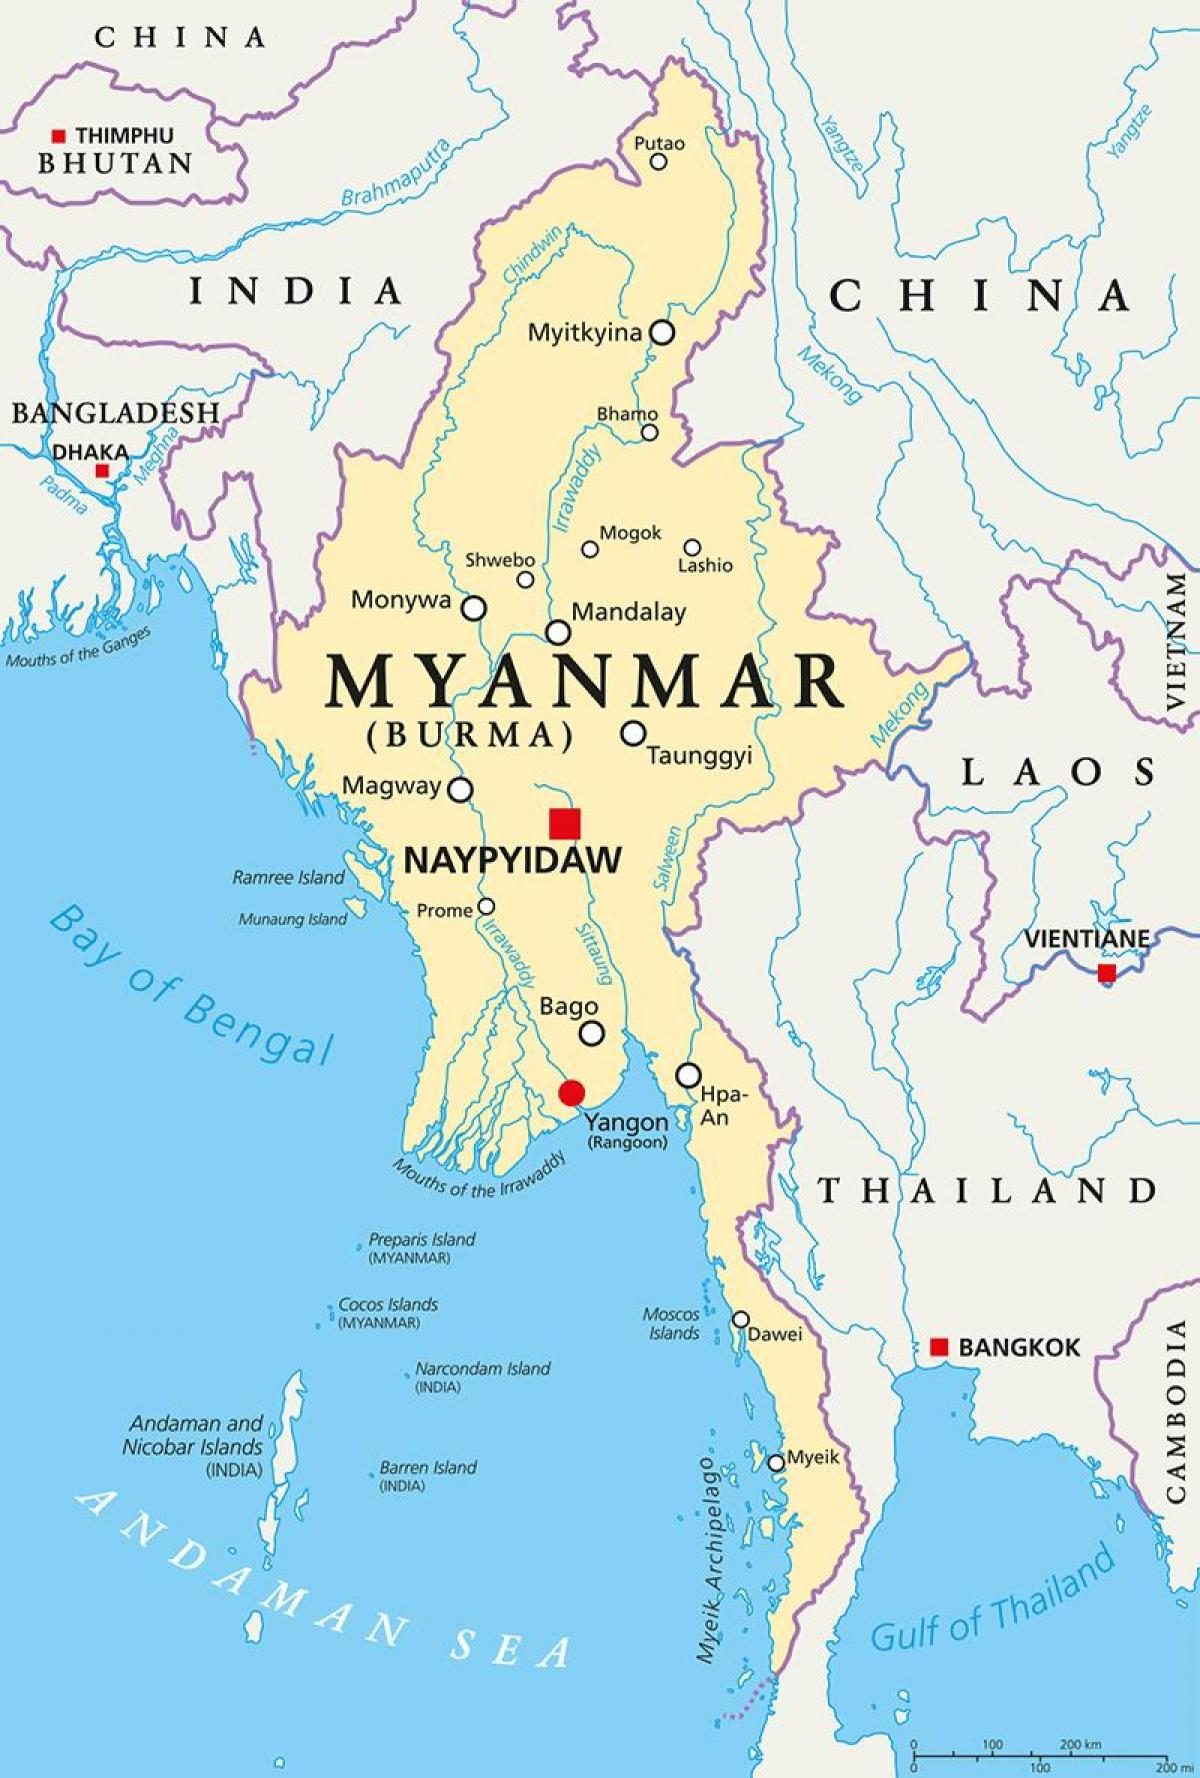 Burma country map - Myanmar country map (South-Eastern Asia - Asia)